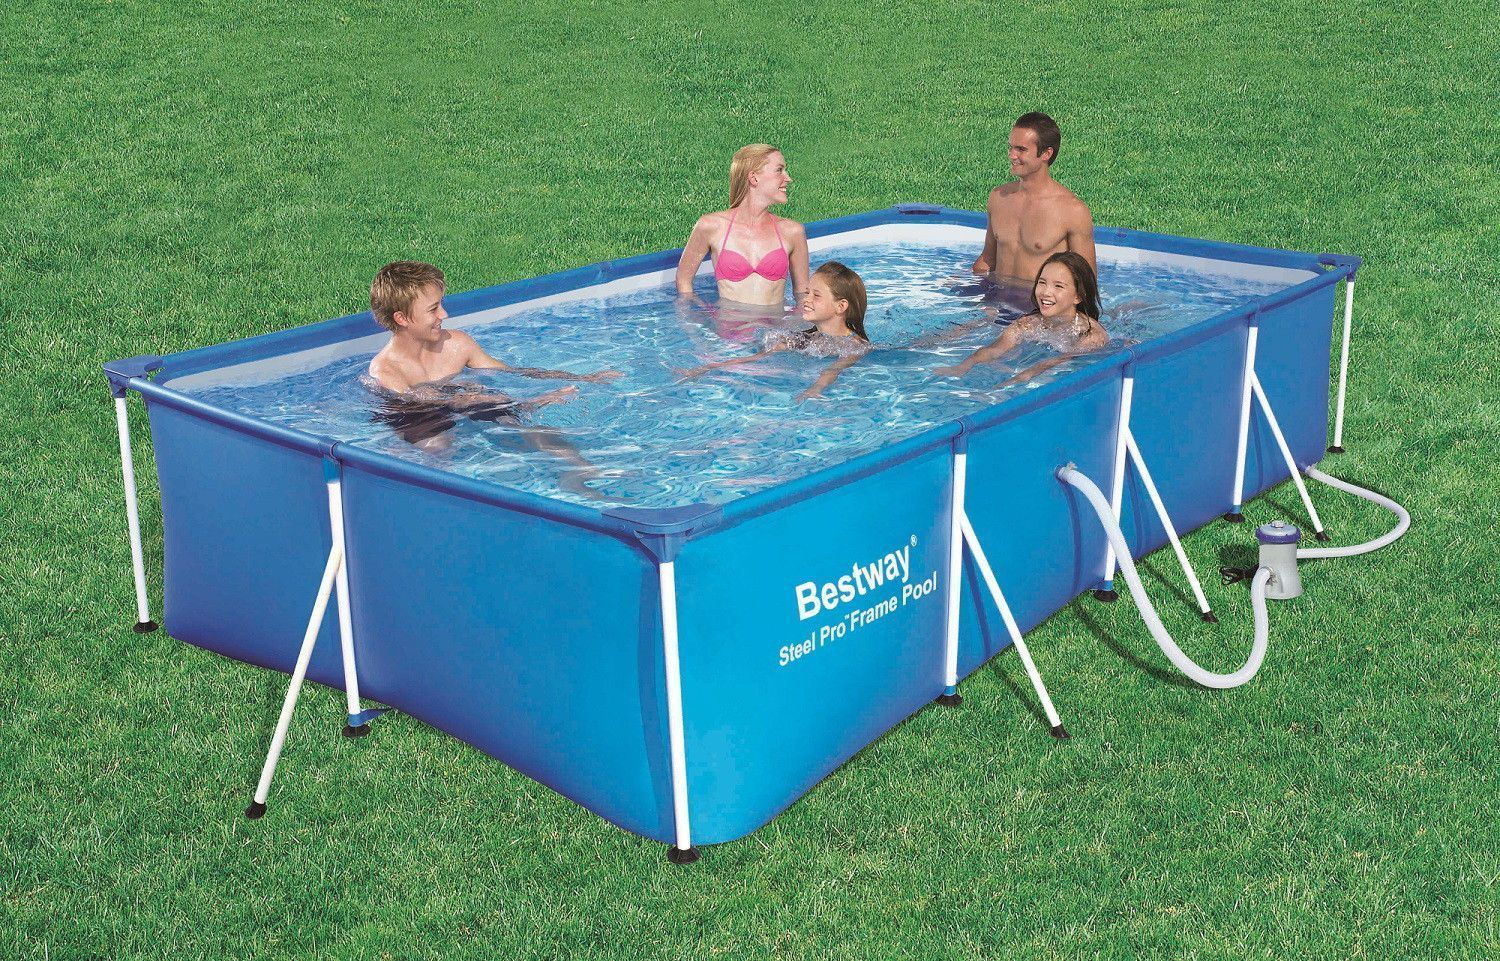 Piscina tubular rectangular azul 400 x 211 x 81 cm con for Piscina pequena desmontable con depuradora